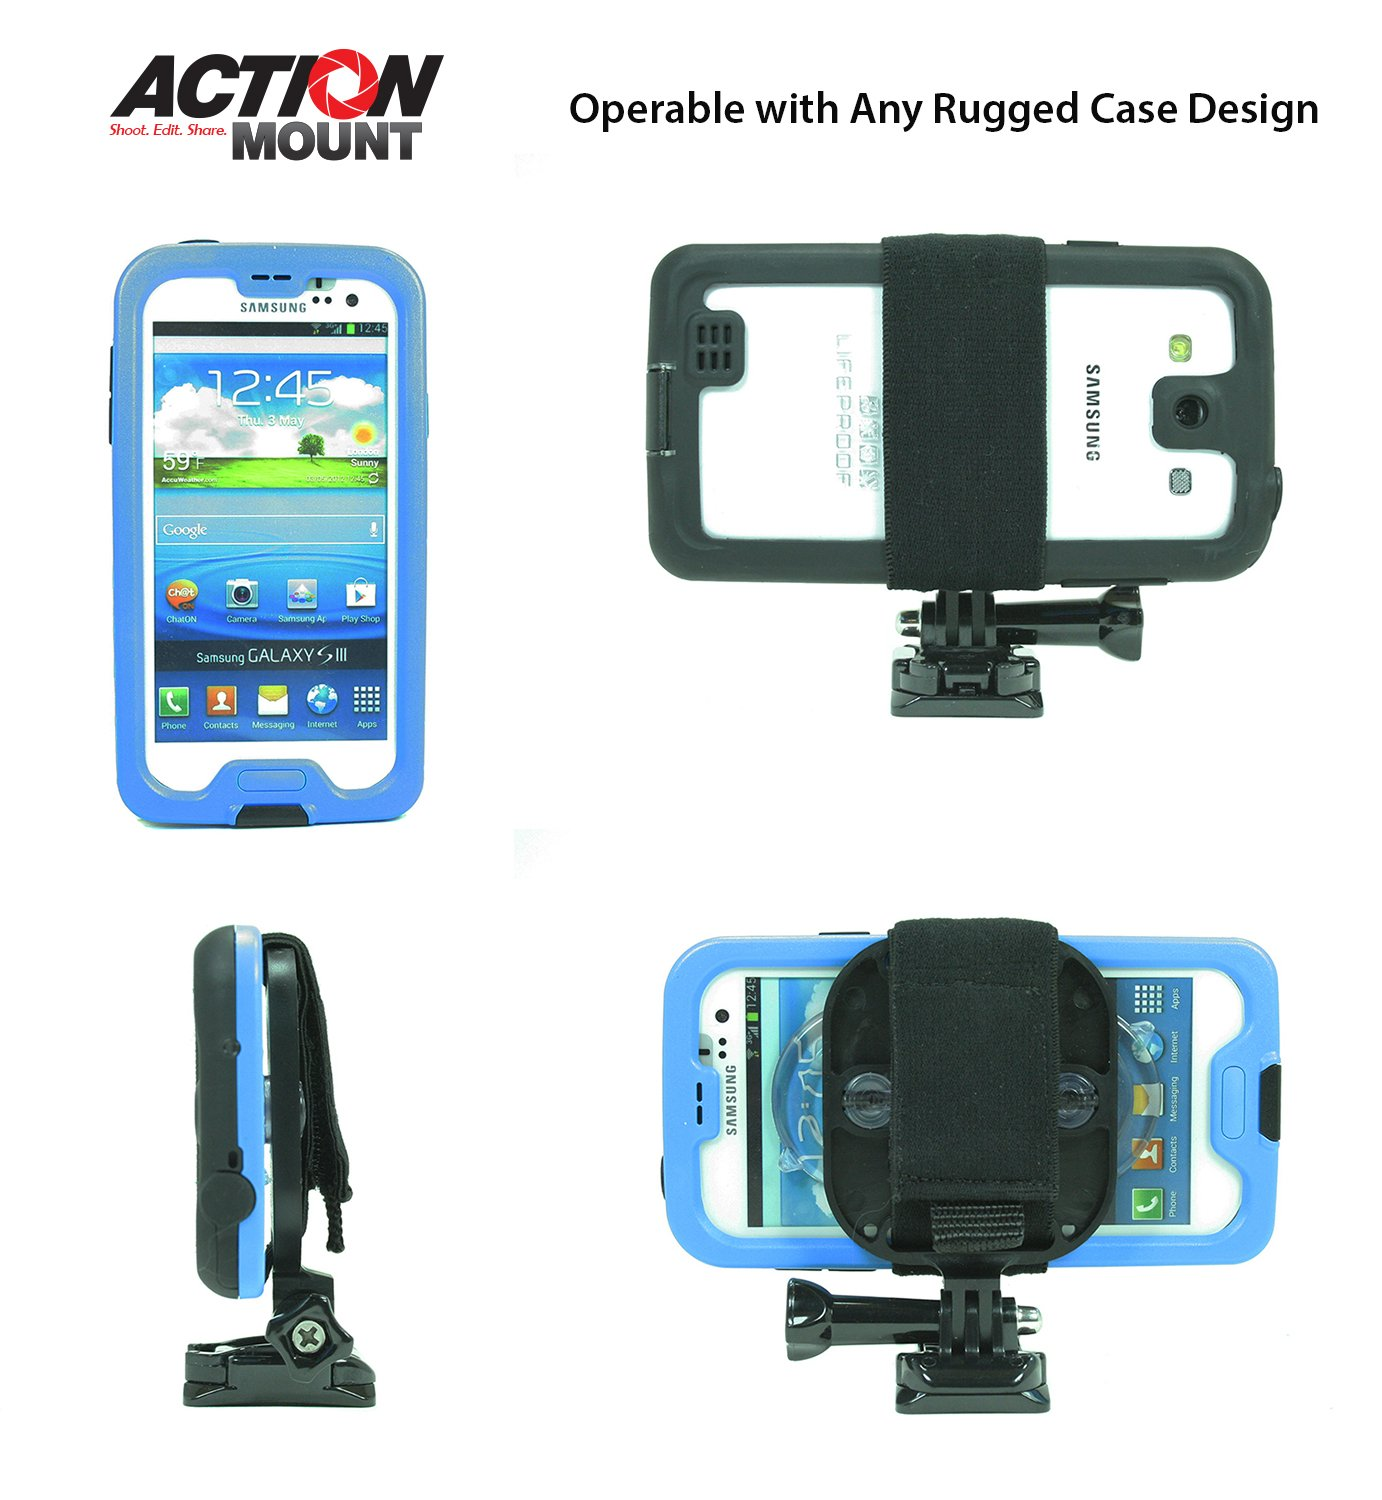 Action Mount - GoPro Style Mouth Mount with Universal Mount Adapter for Smartphone, Operable with Any Phone & GoPro. Compatible with Waterproof Cases.(with Floaty, Neck Lanyard).